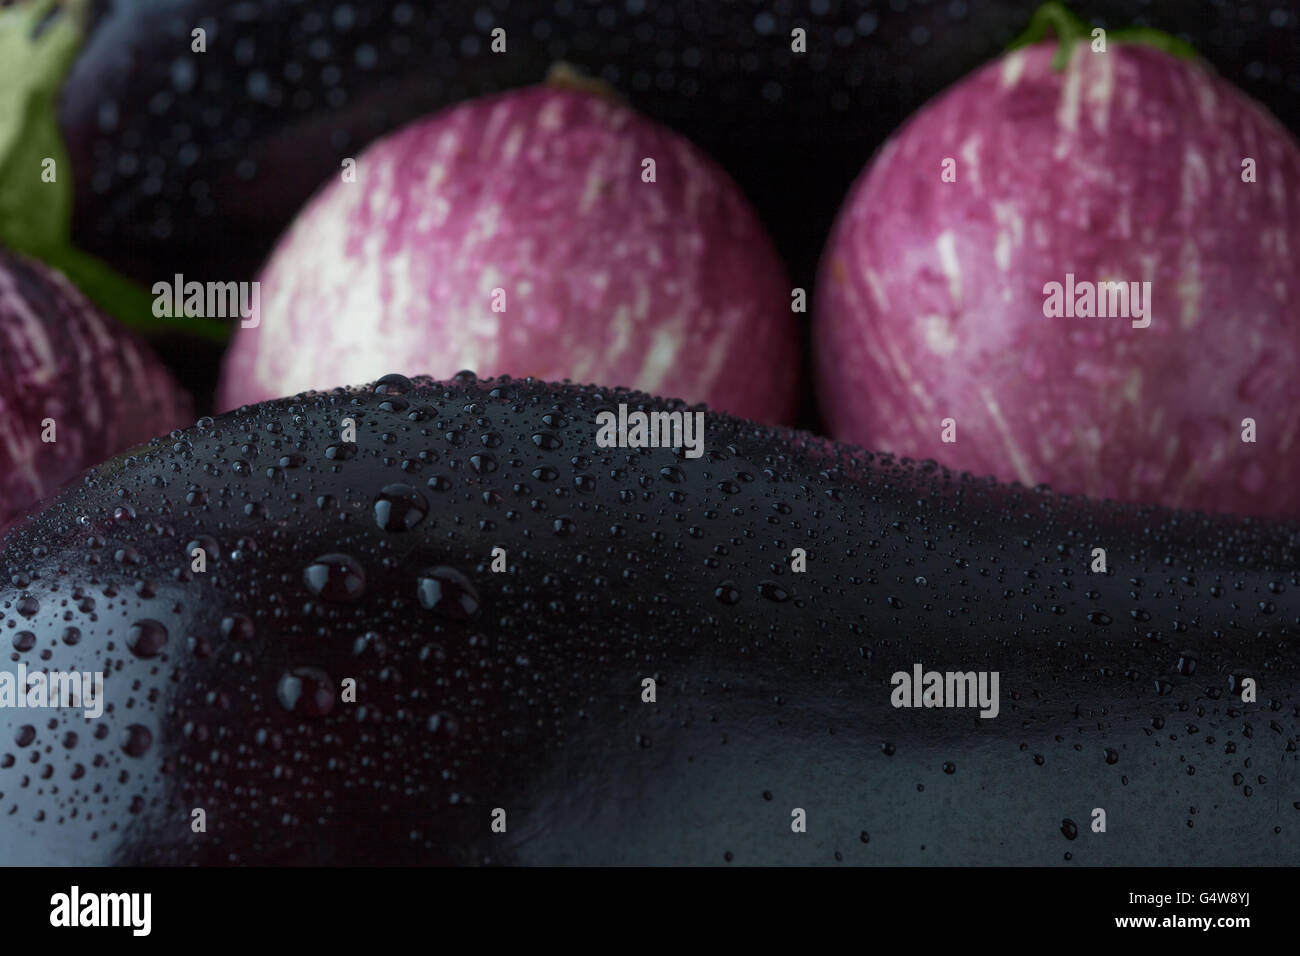 Wet black and purple striped eggplants extreme closeup. Shallow depth of field - Stock Image